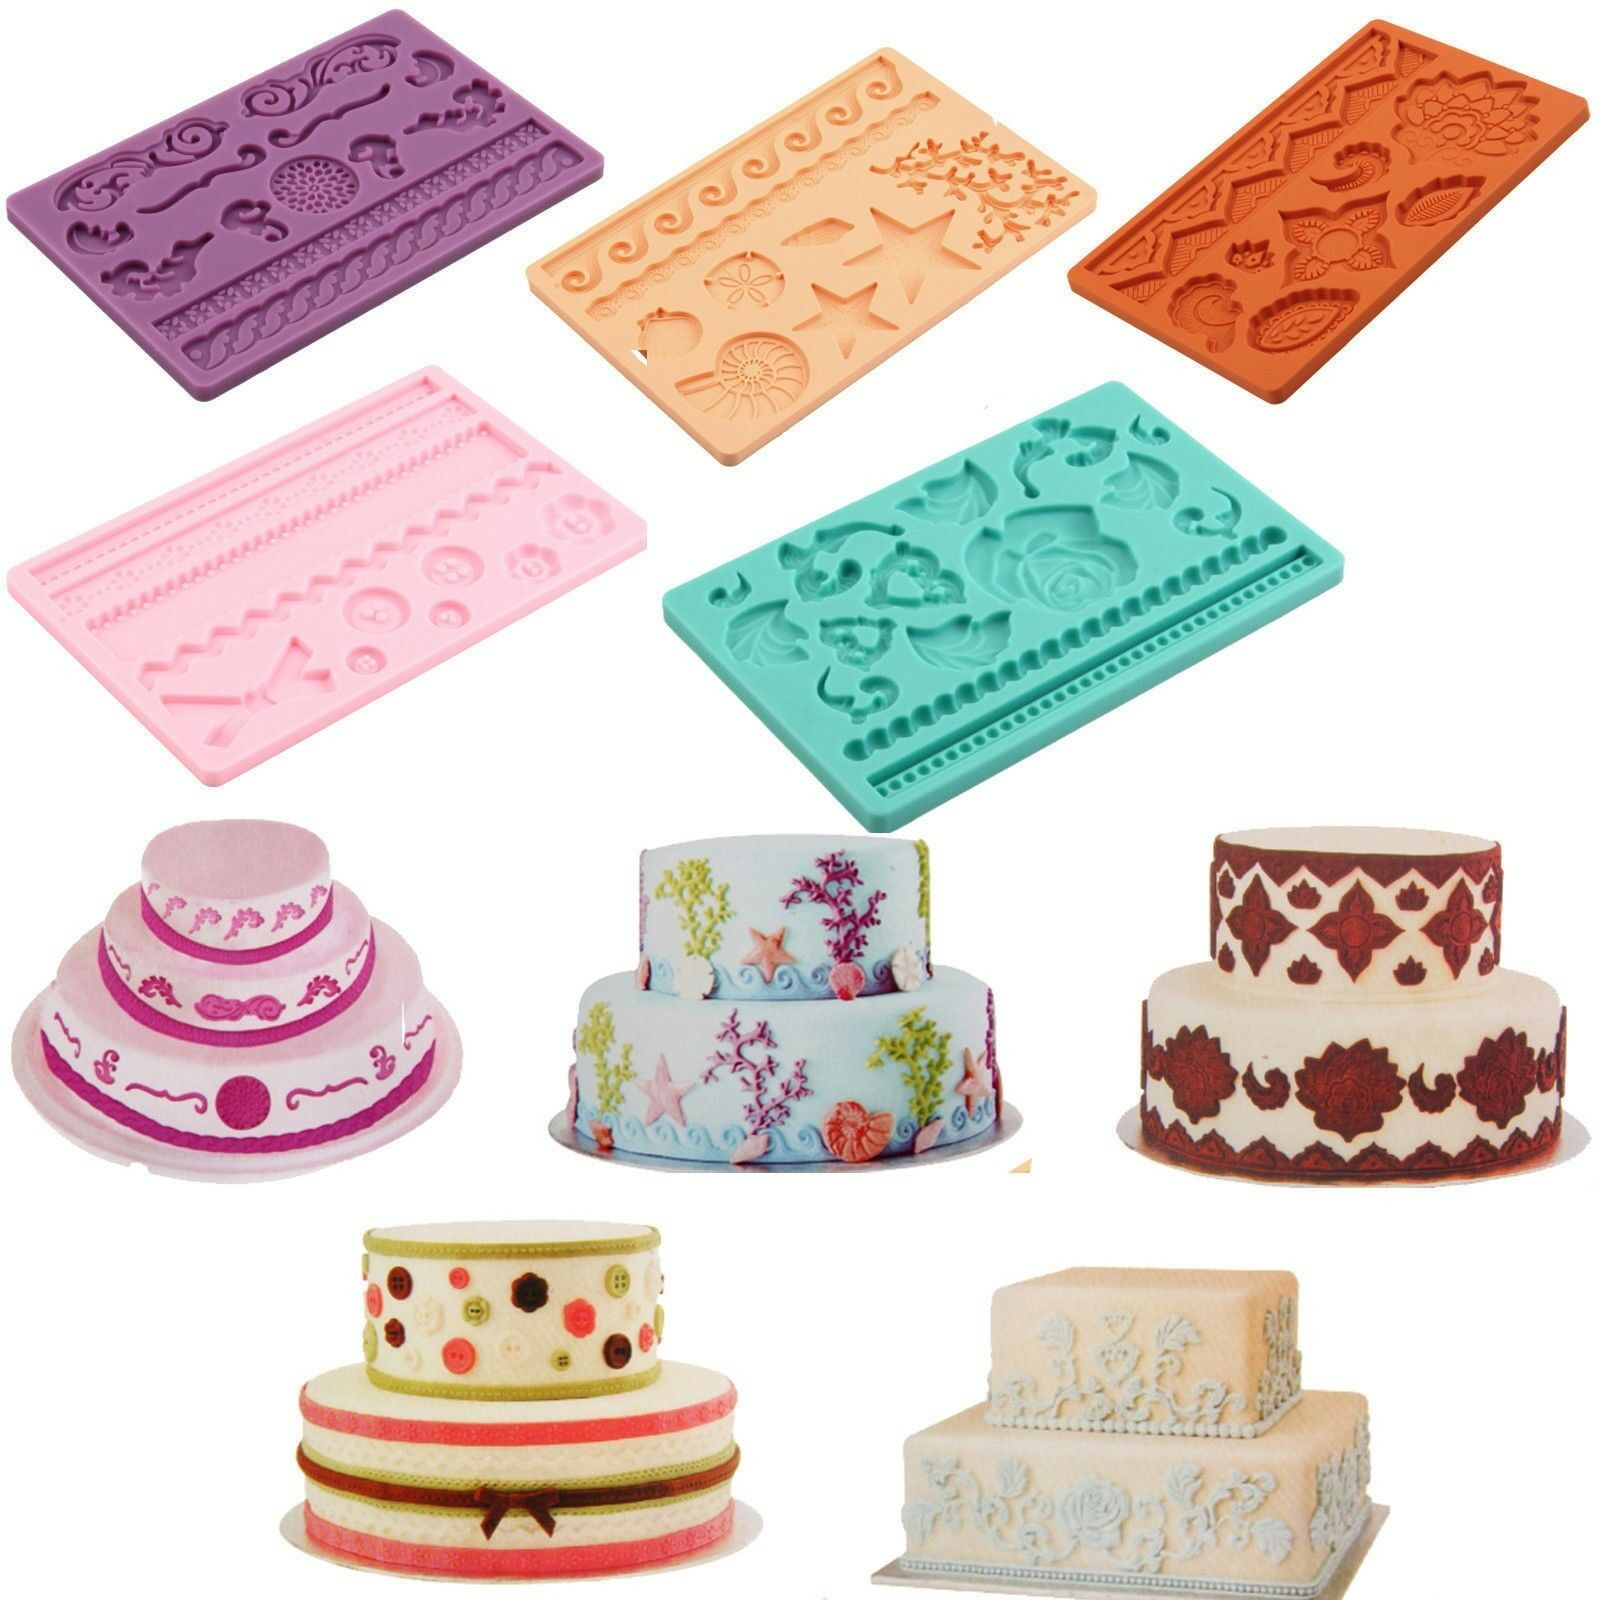 Food Grade Silicone Mold Making For Baking Cakes